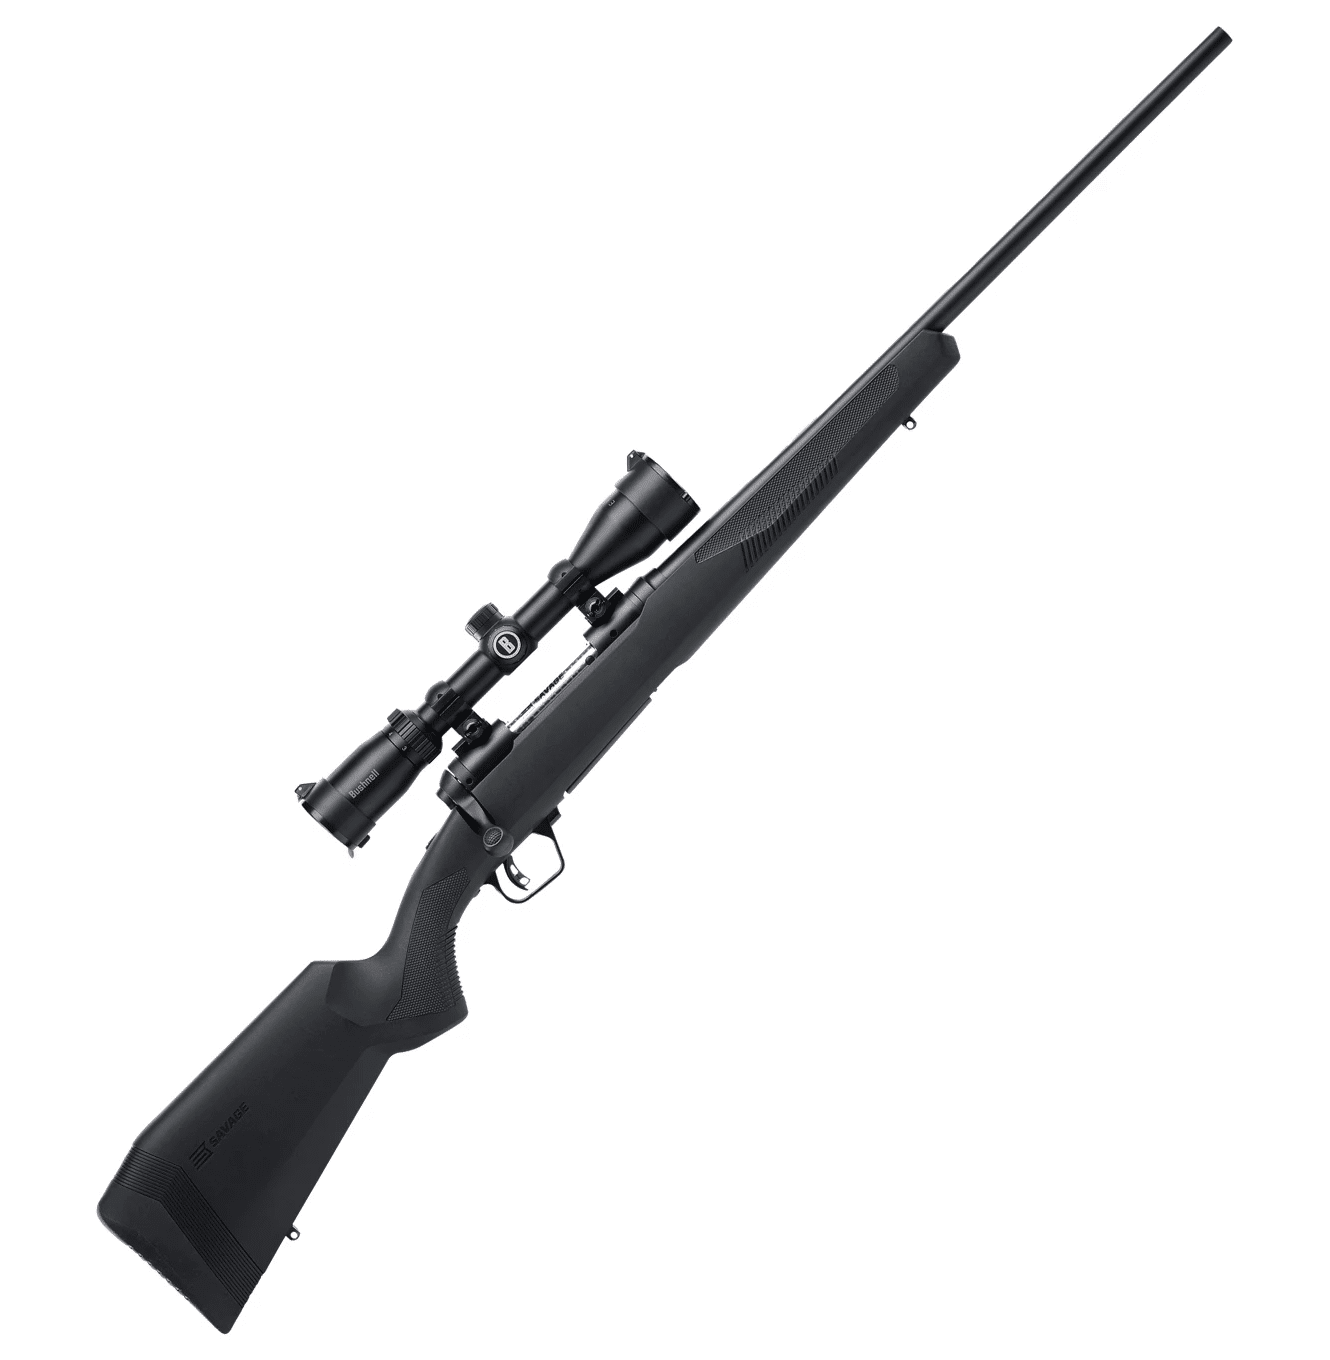 Savage 110 Engage Hunter XP Bolt-Action Best Hunting Rifle with Scope